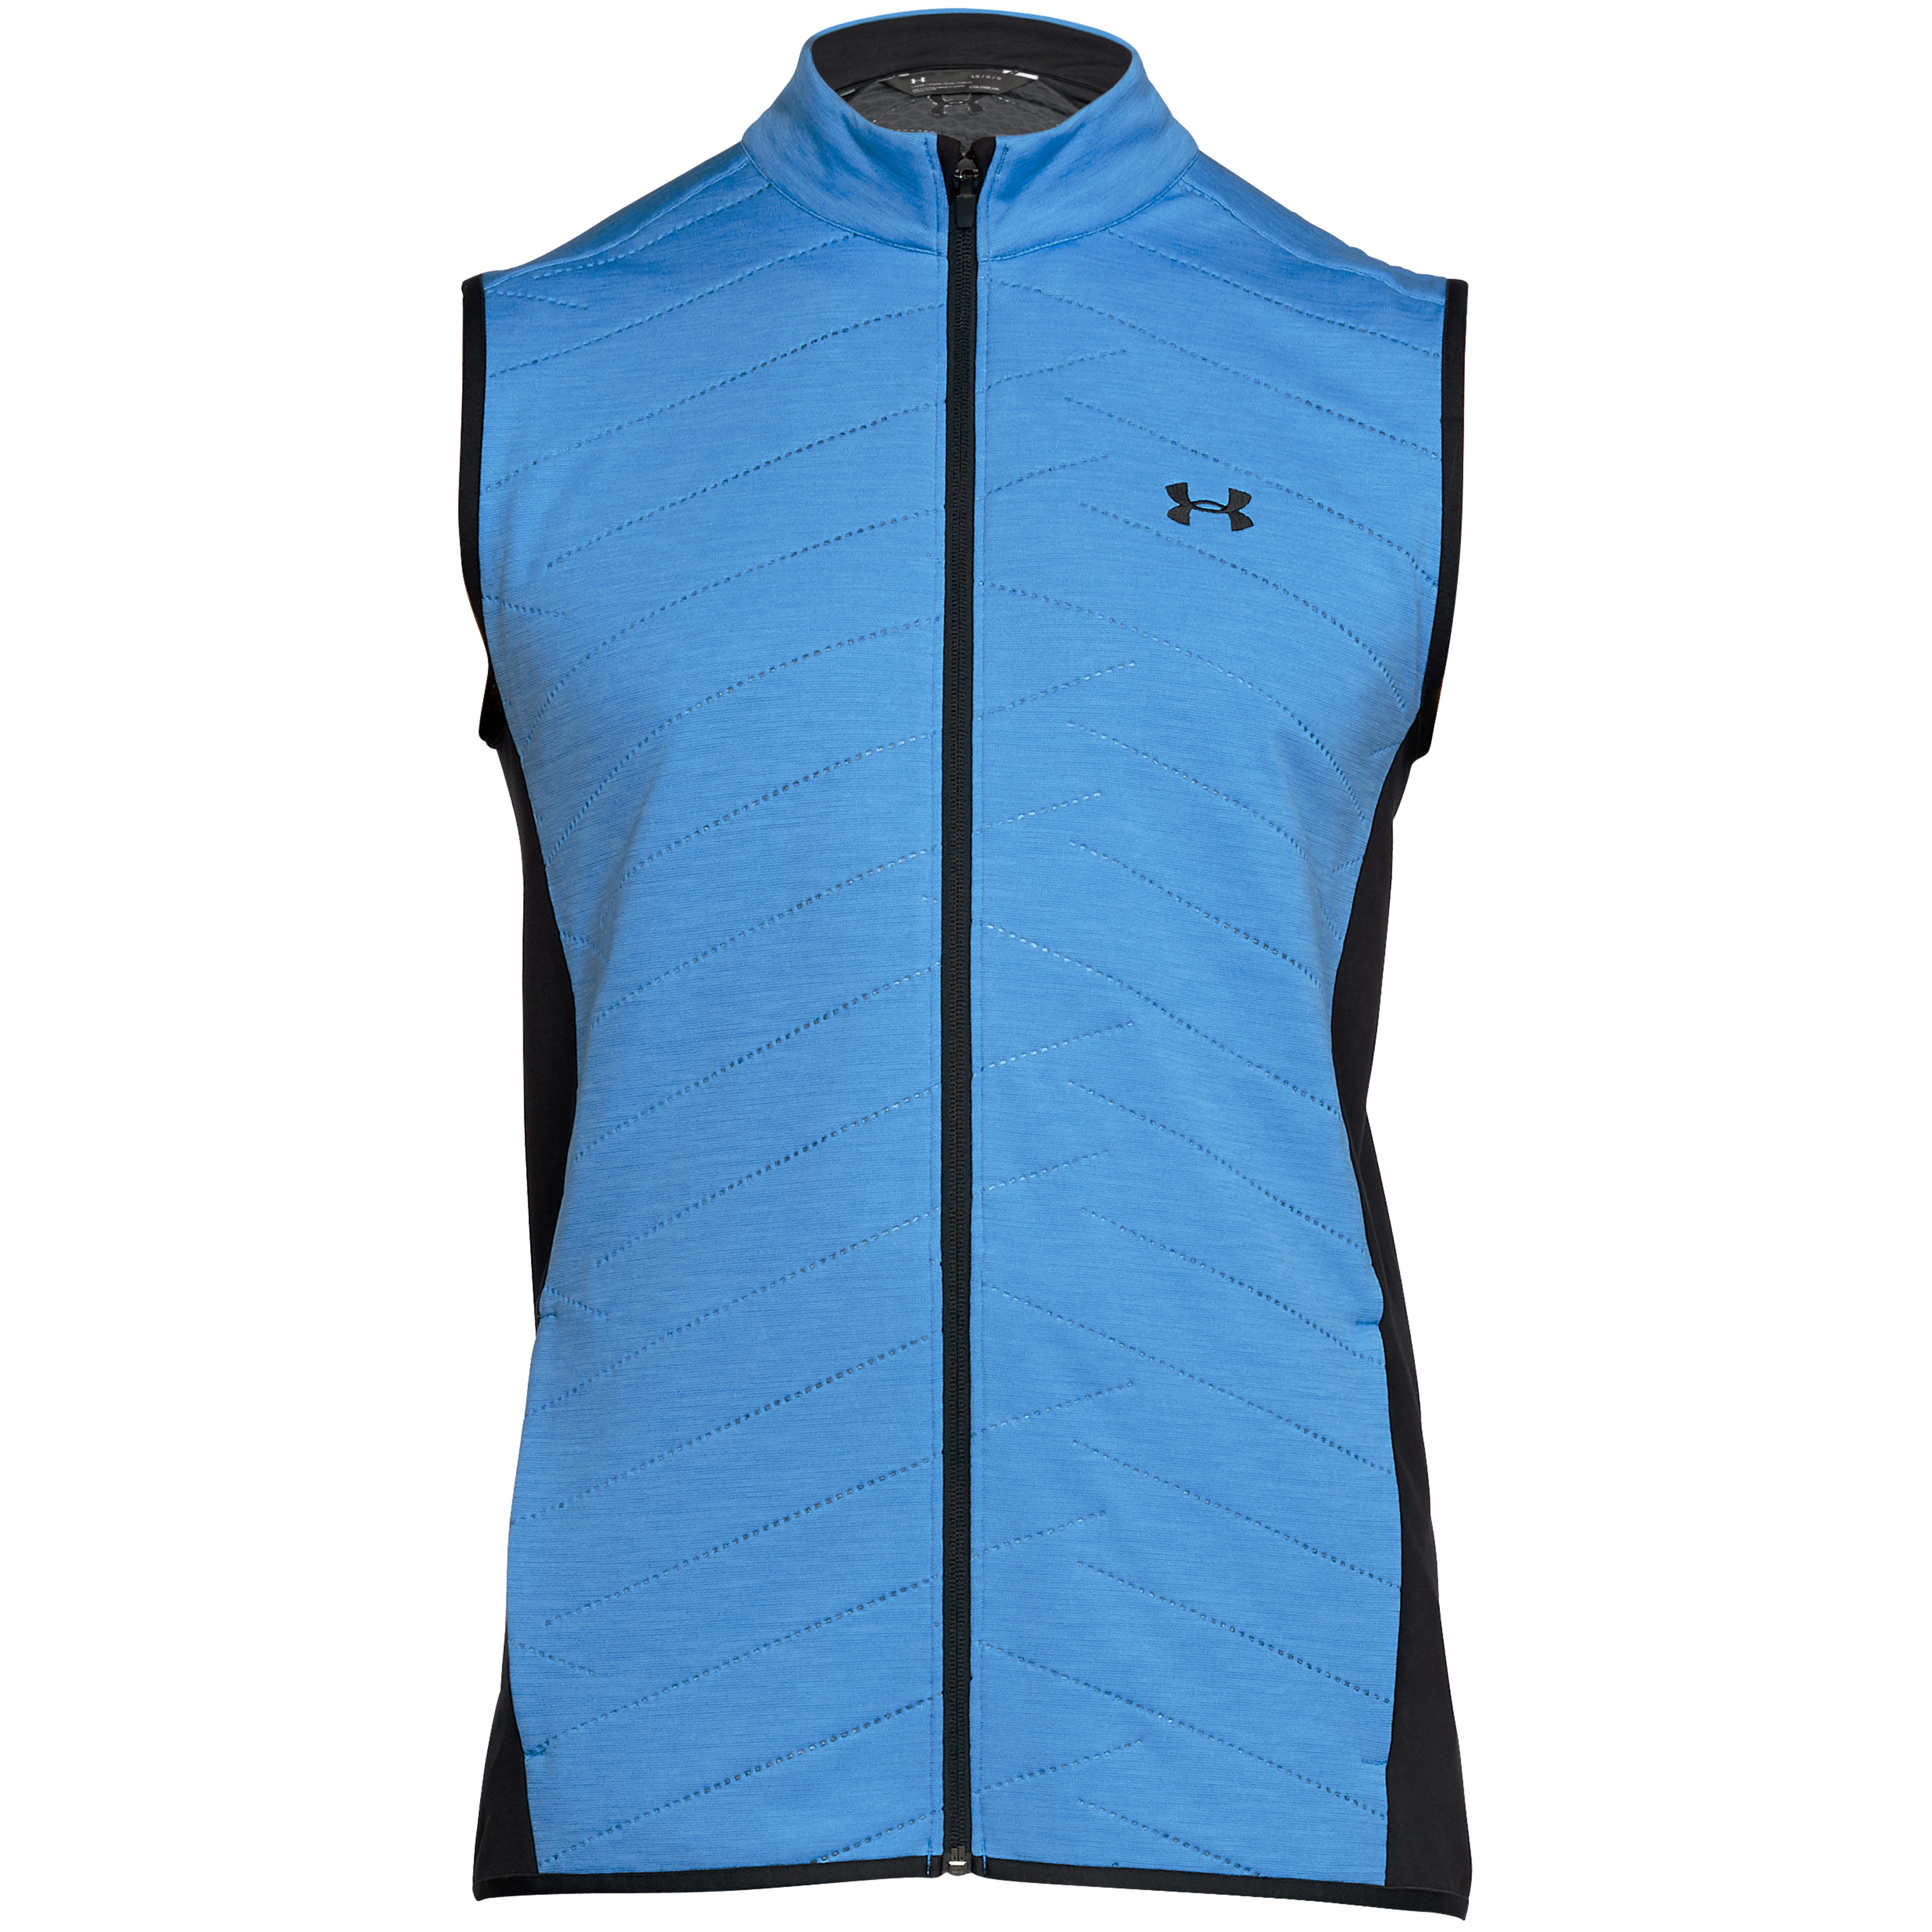 Under-Armour-Mens-UA-Reactor-Hybrid-Vest-FZ-Bodywarmer-Gilet-43-OFF-RRP thumbnail 6